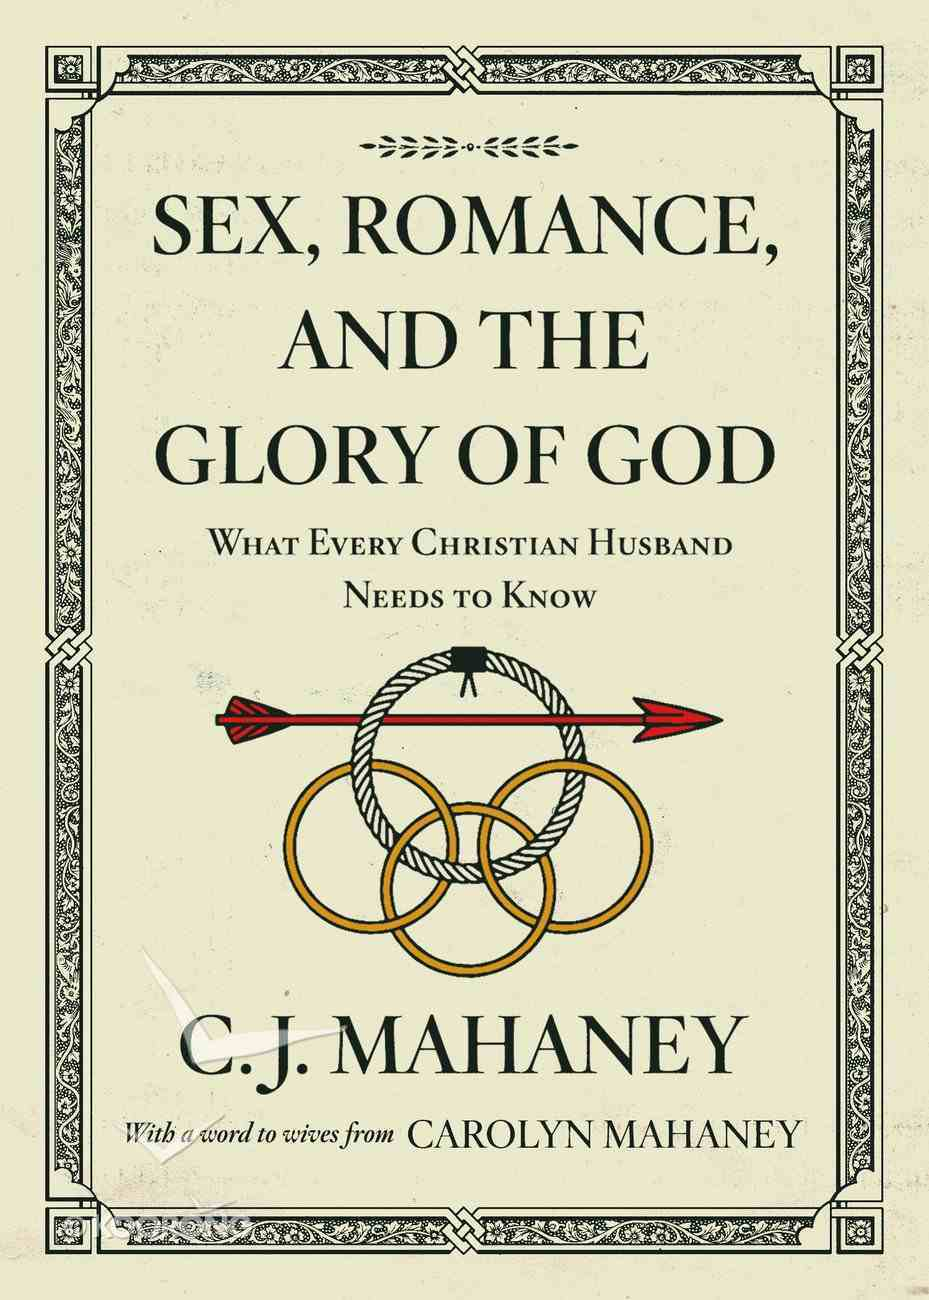 Sex, Romance, and the Glory of God: What Every Christian Husband Needs to Know Paperback